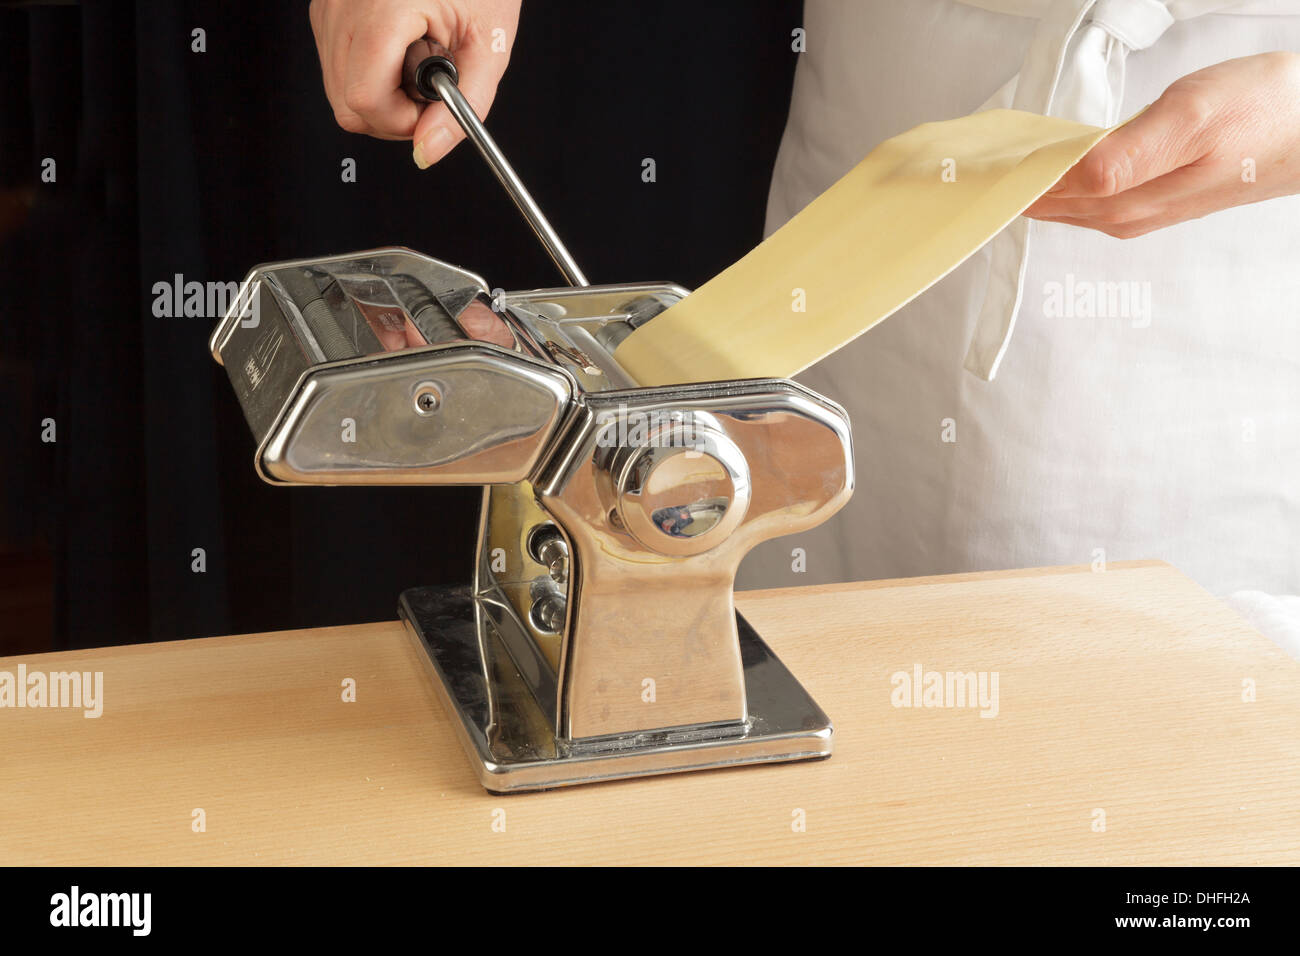 rolling pasta sheets with a machine - Stock Image